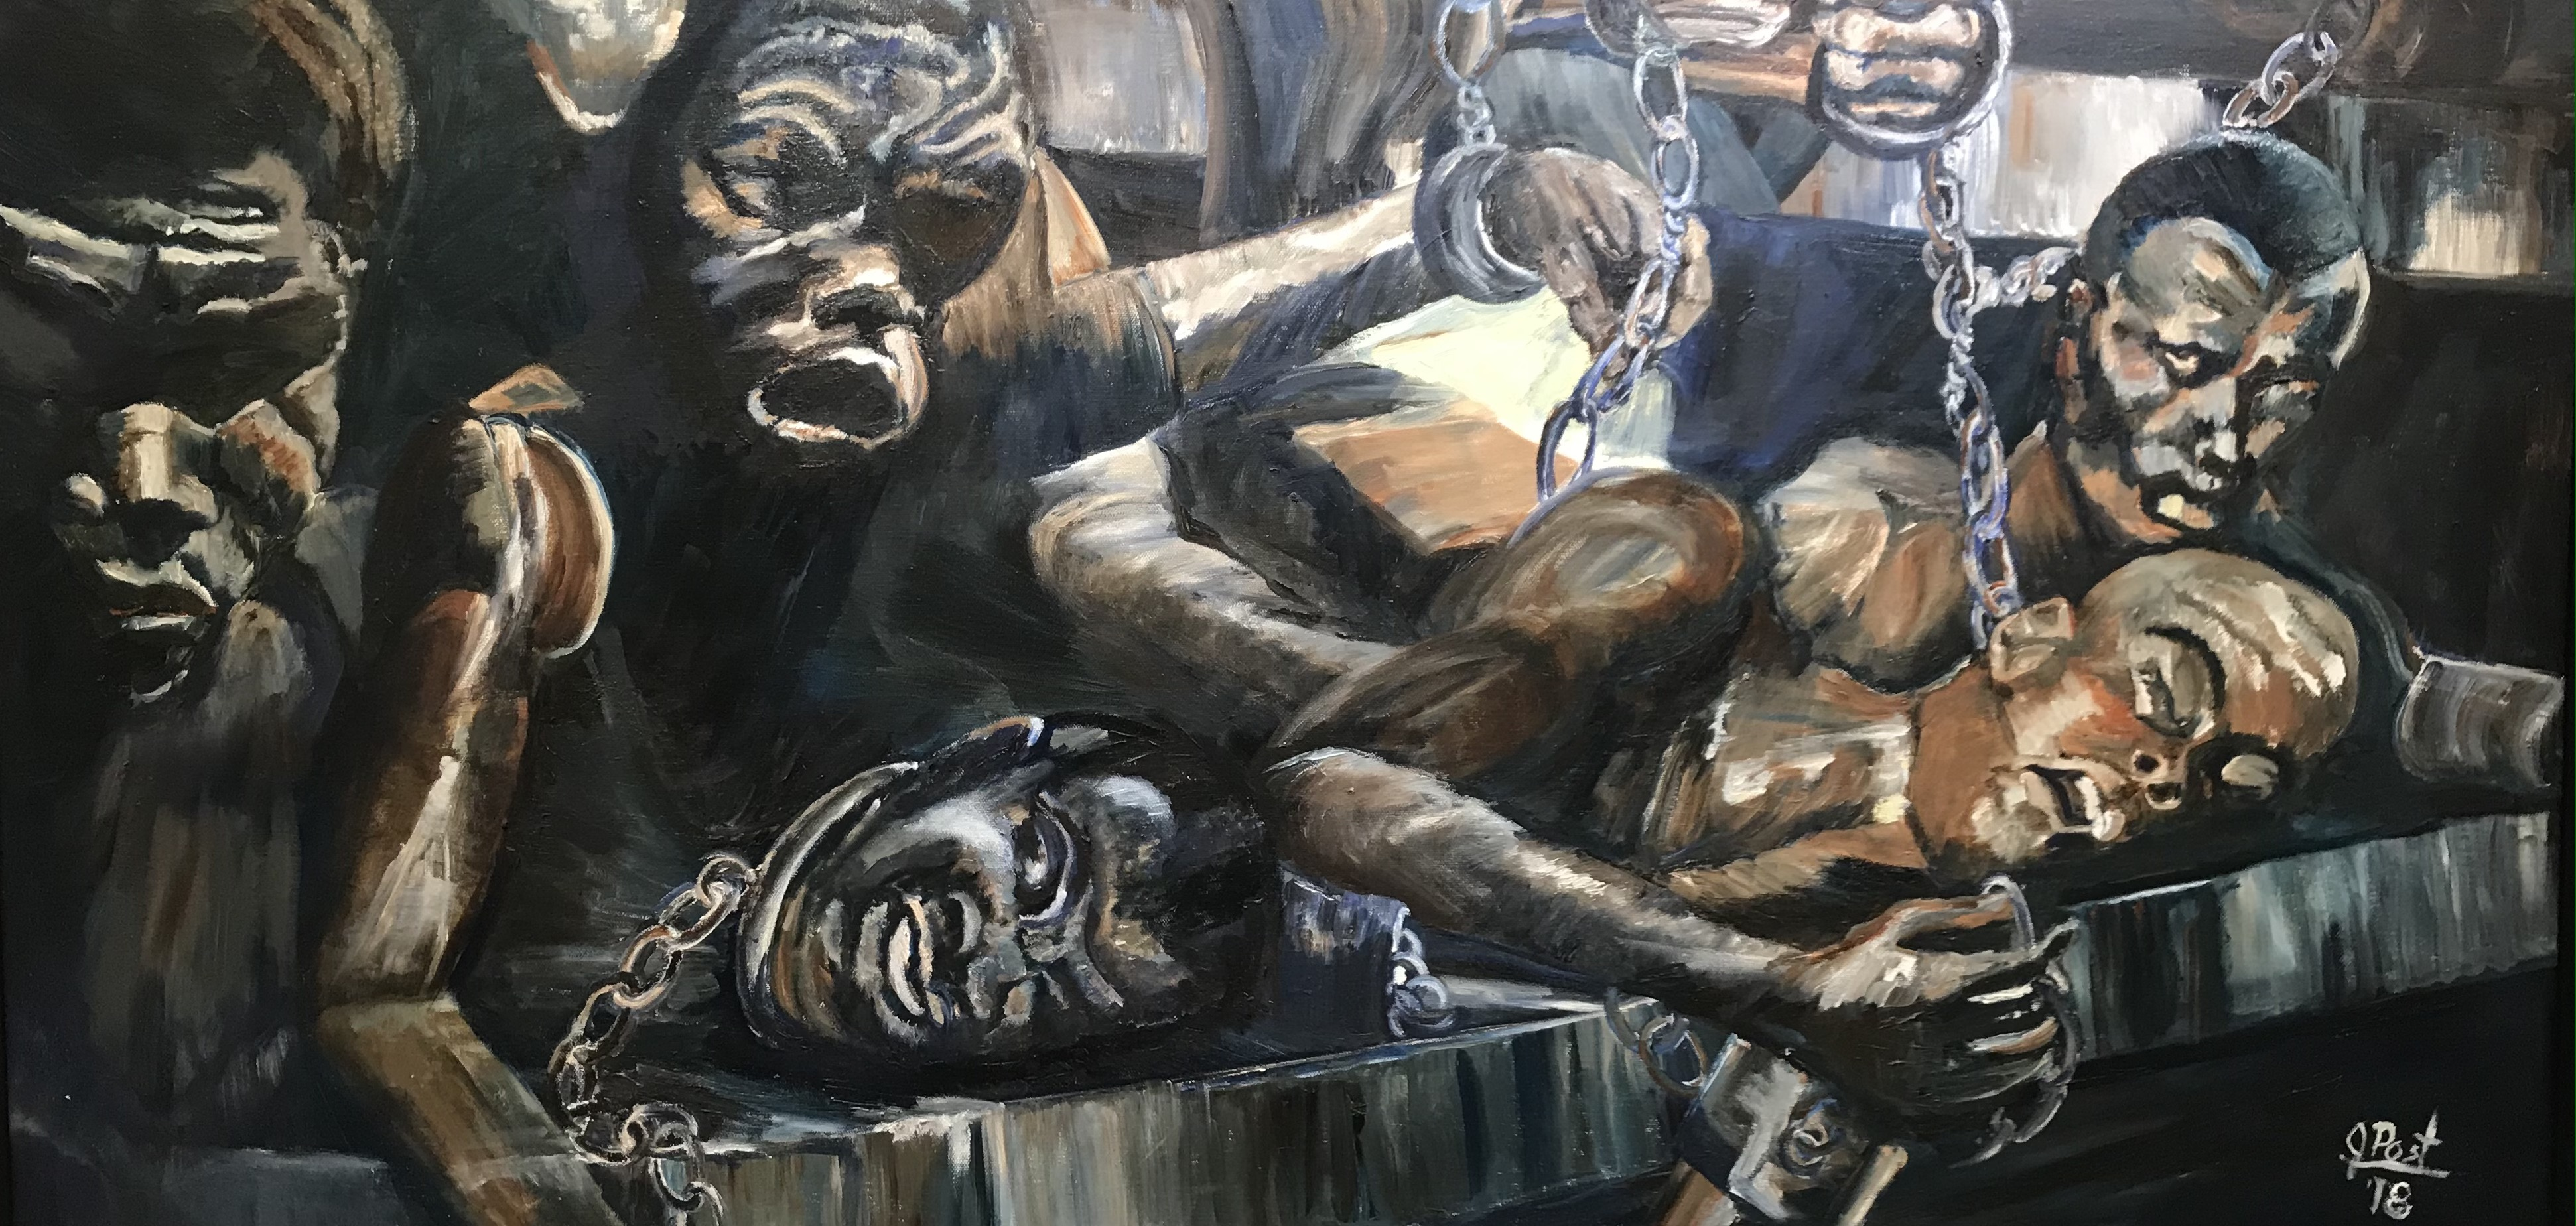 'Slaves', oil by Janet Post ($1,500) ⎼ 'Black Lives Matter has always mattered to me. I'm particularly saddened by the plight of the slaves on their long journey from Africa so I painted it.'